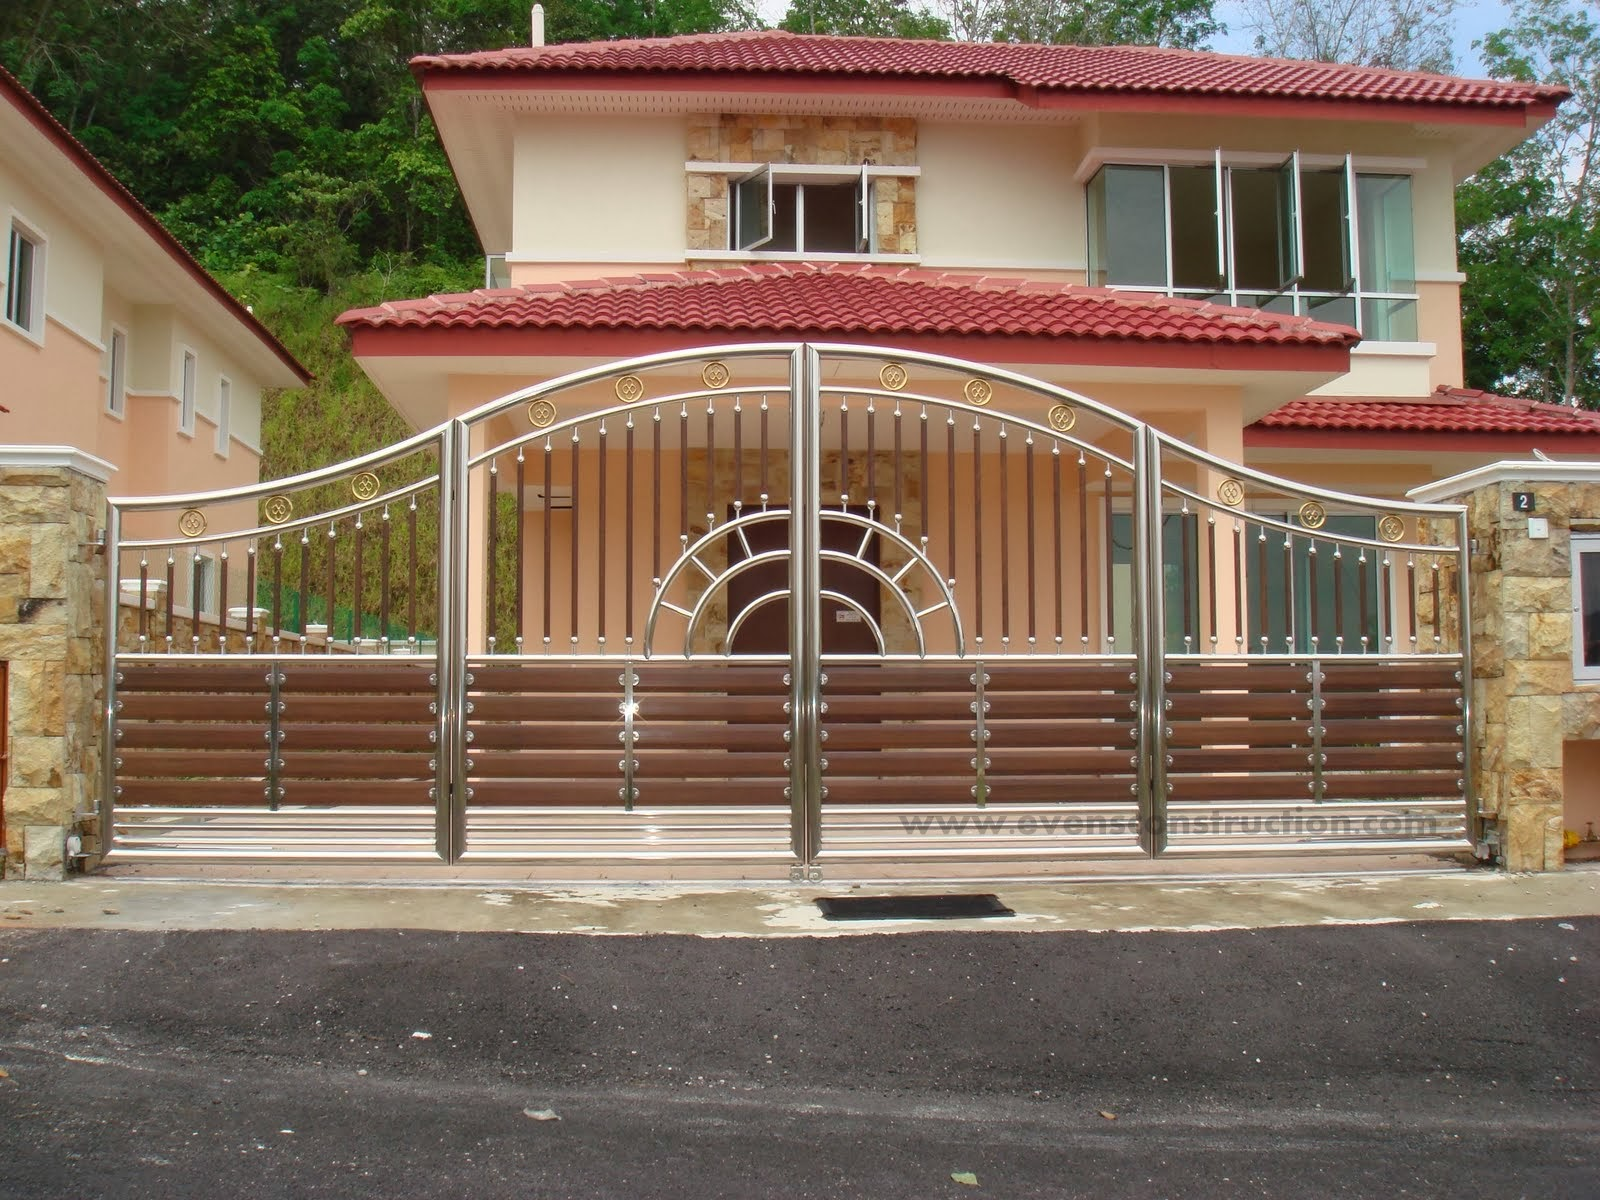 Design Of Compound Wall Gate : Compound wall gate joy studio design gallery best